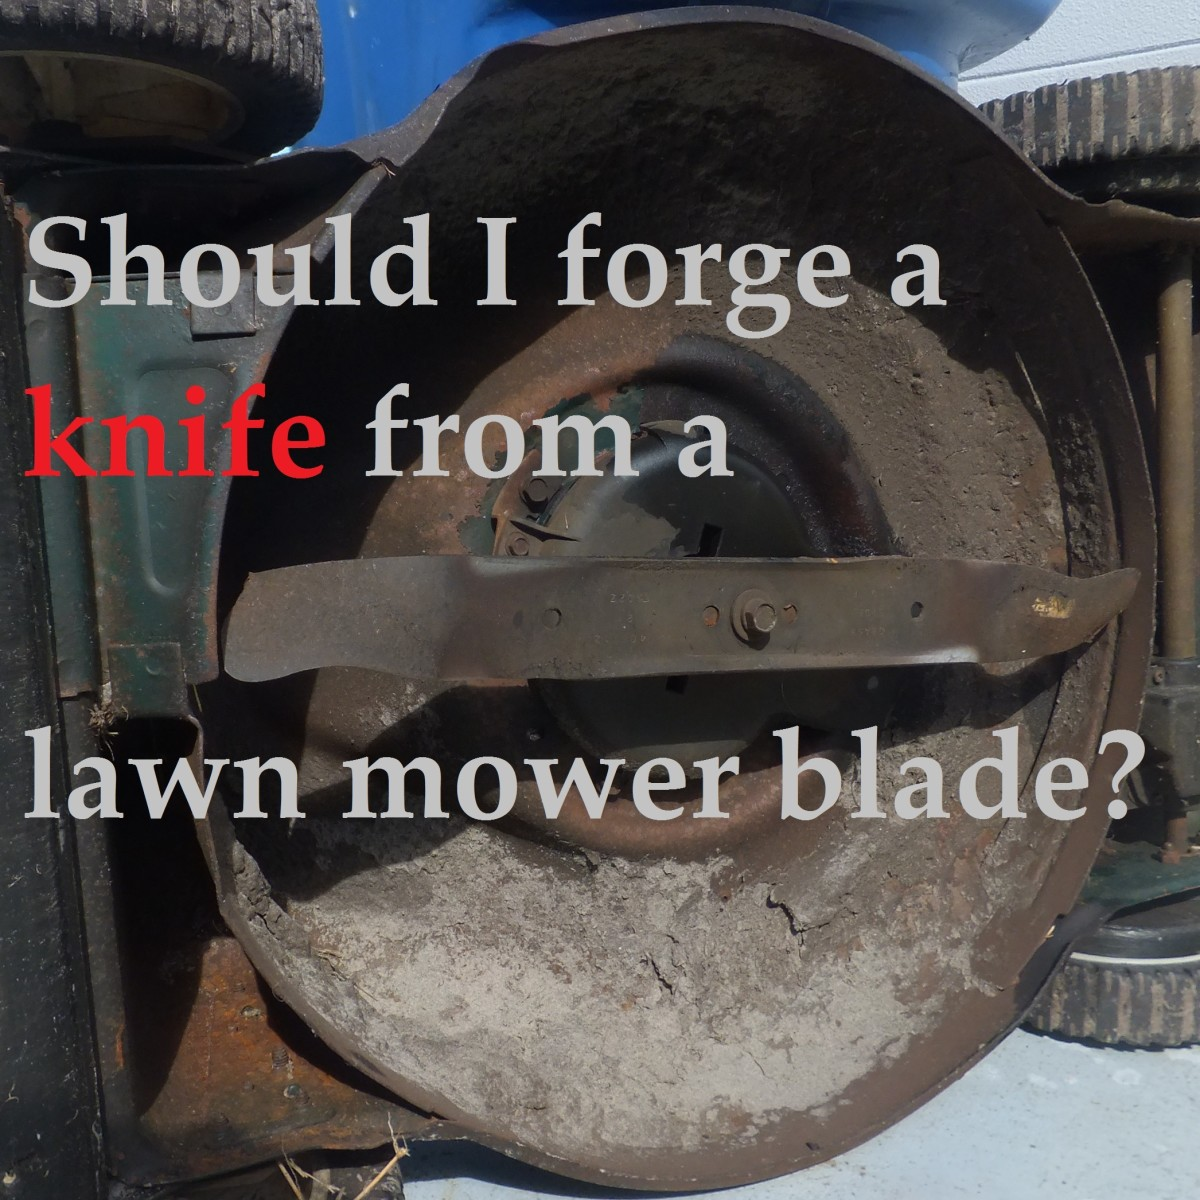 Should I Forge a Knife from a Lawnmower Blade?